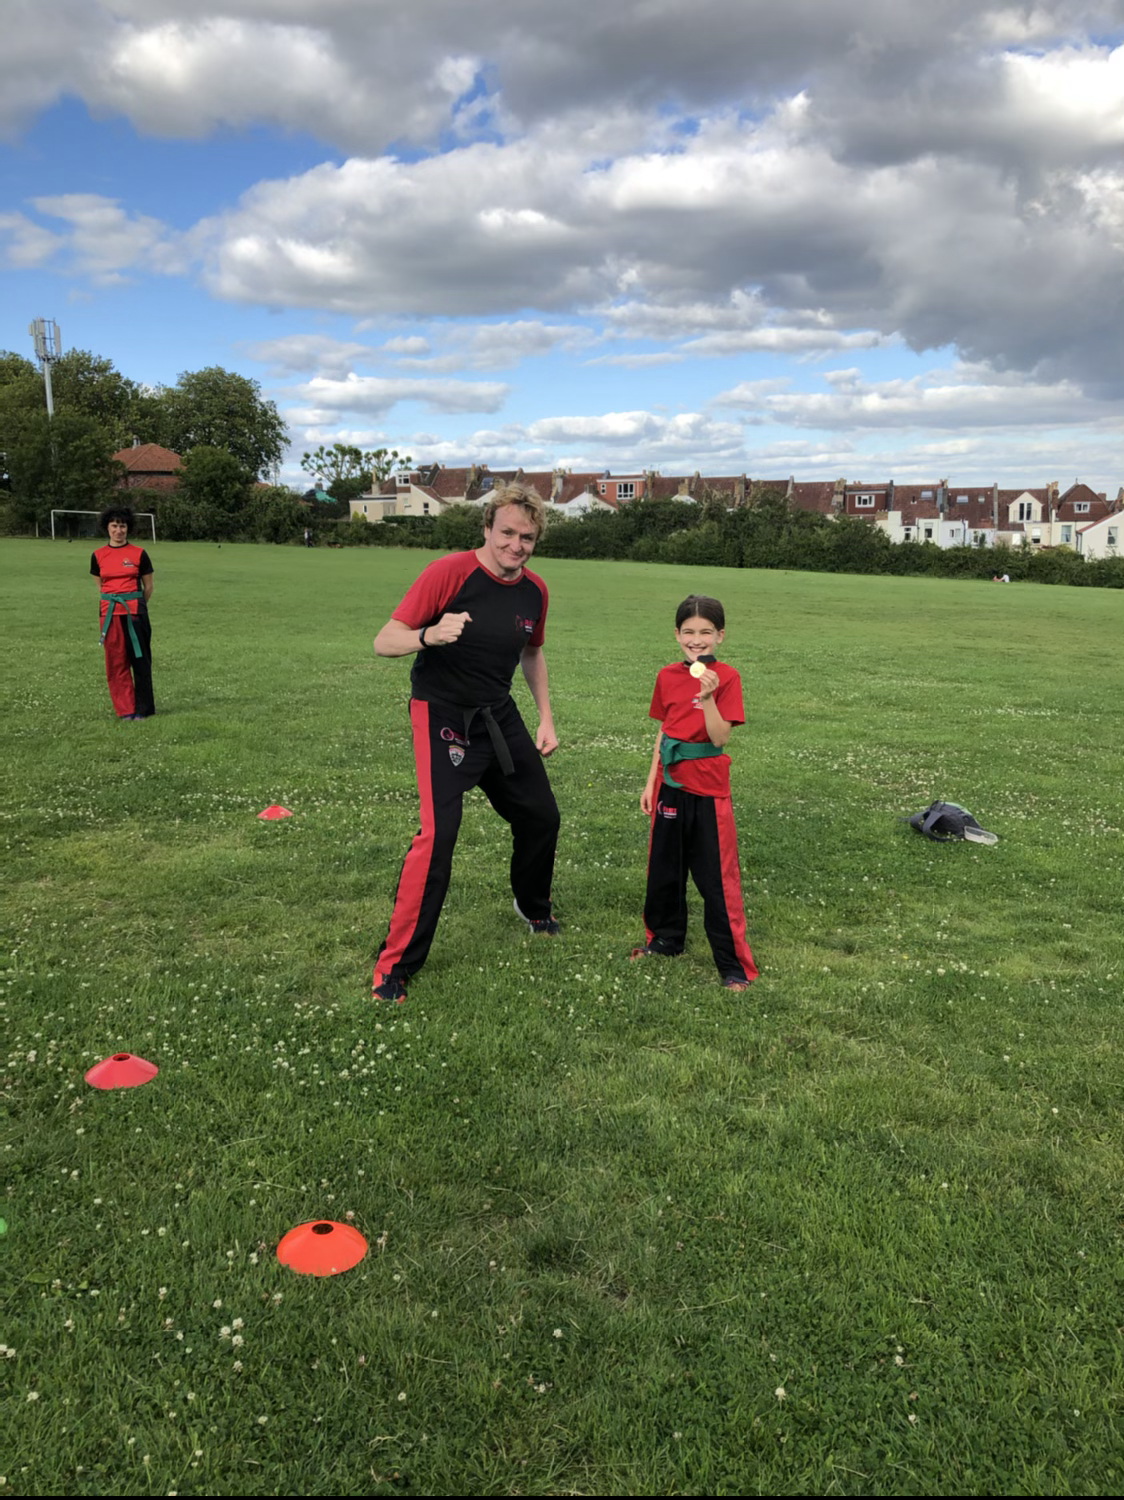 Red Dragons Martial Arts Horfield, Henleaze, Bishopston, Martial arts in Henleaze, Martial Arts in B